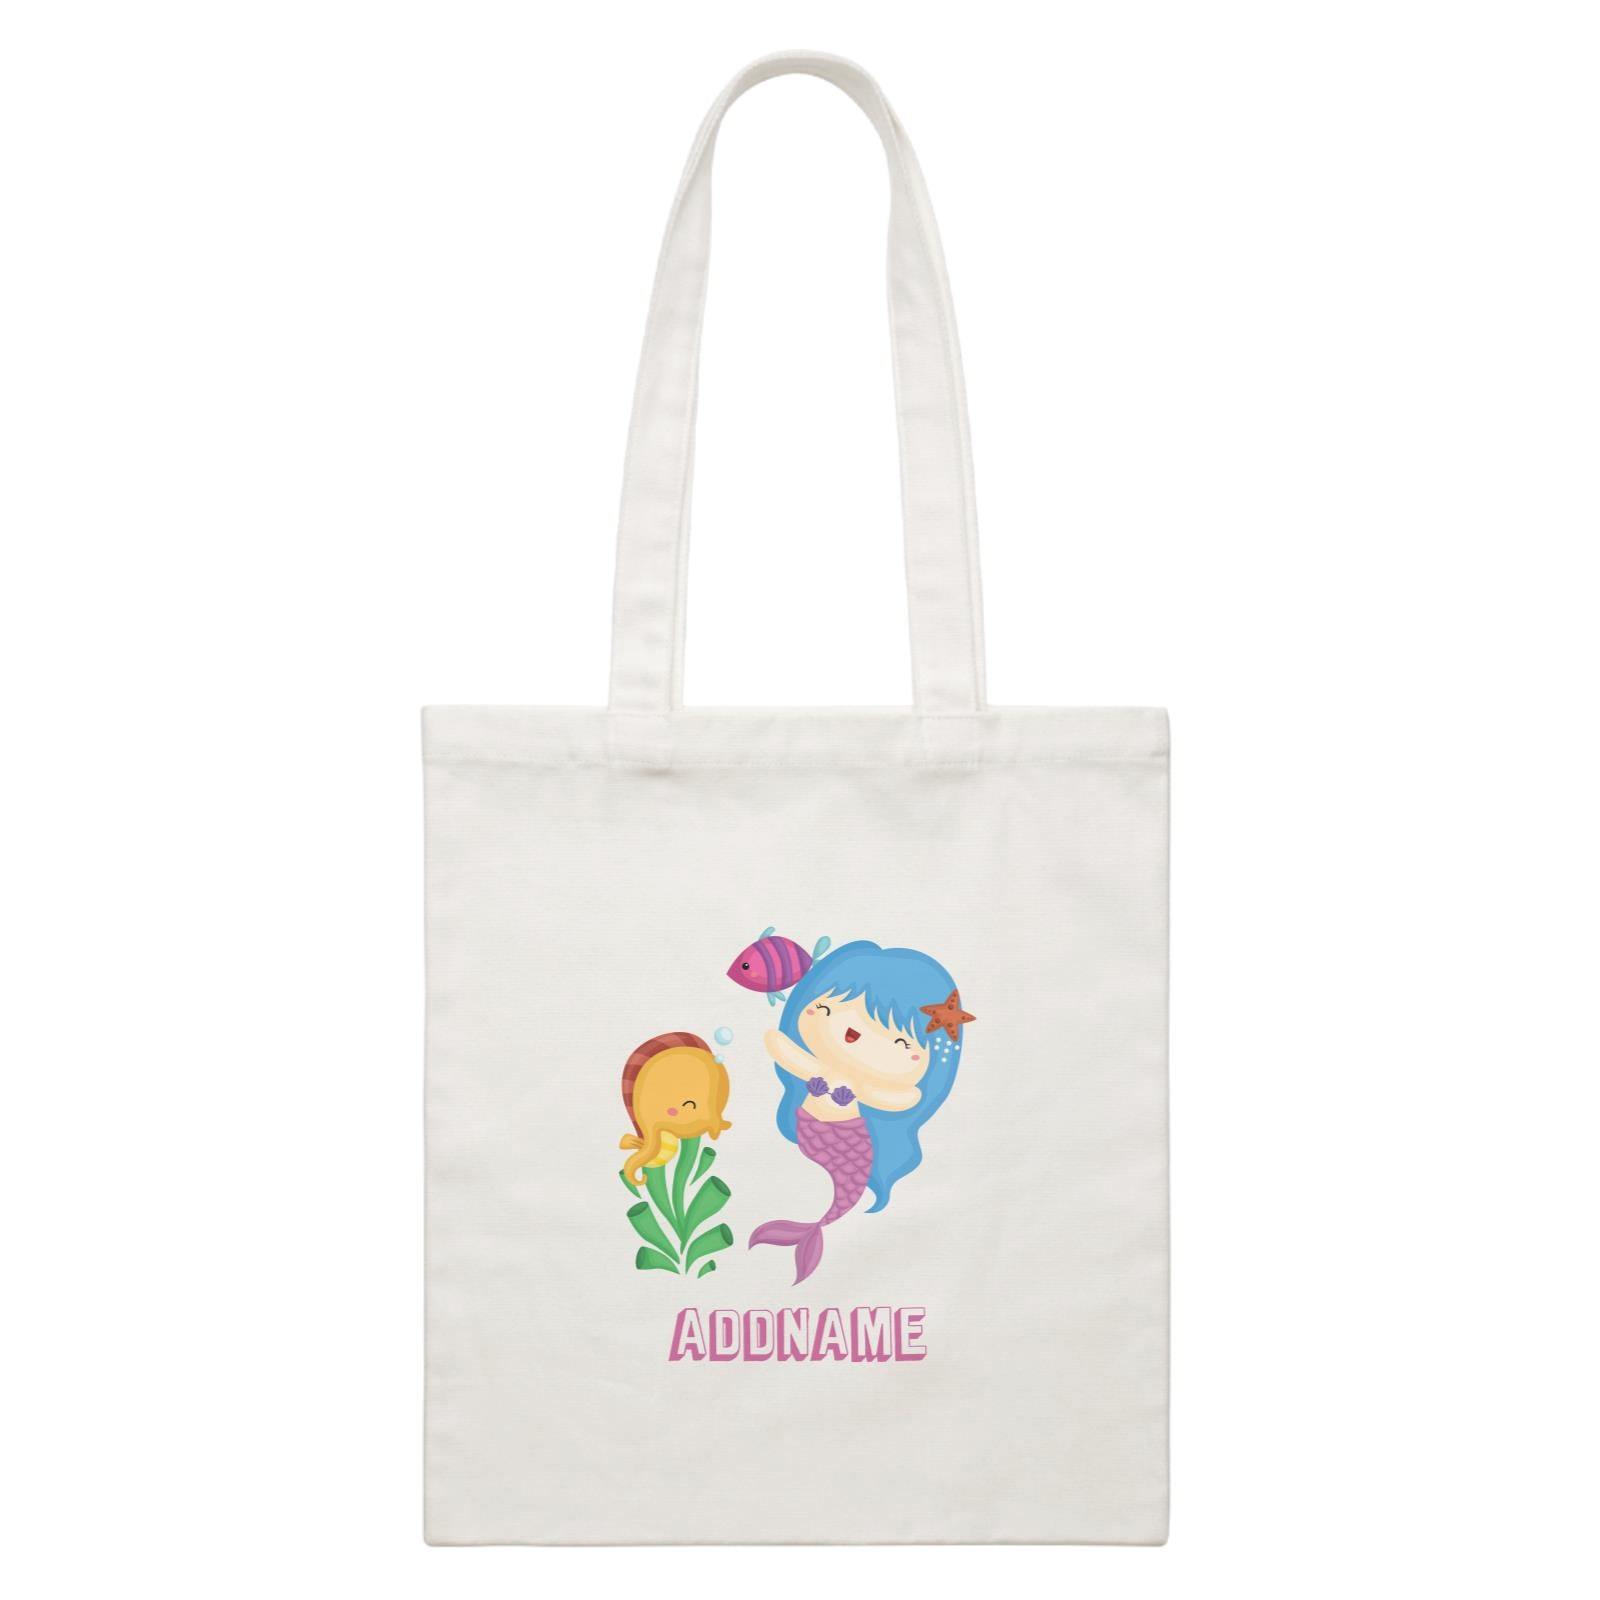 Birthday Mermaid Blue Hair Mermaid Playing With Seahorse Addname White Canvas Bag